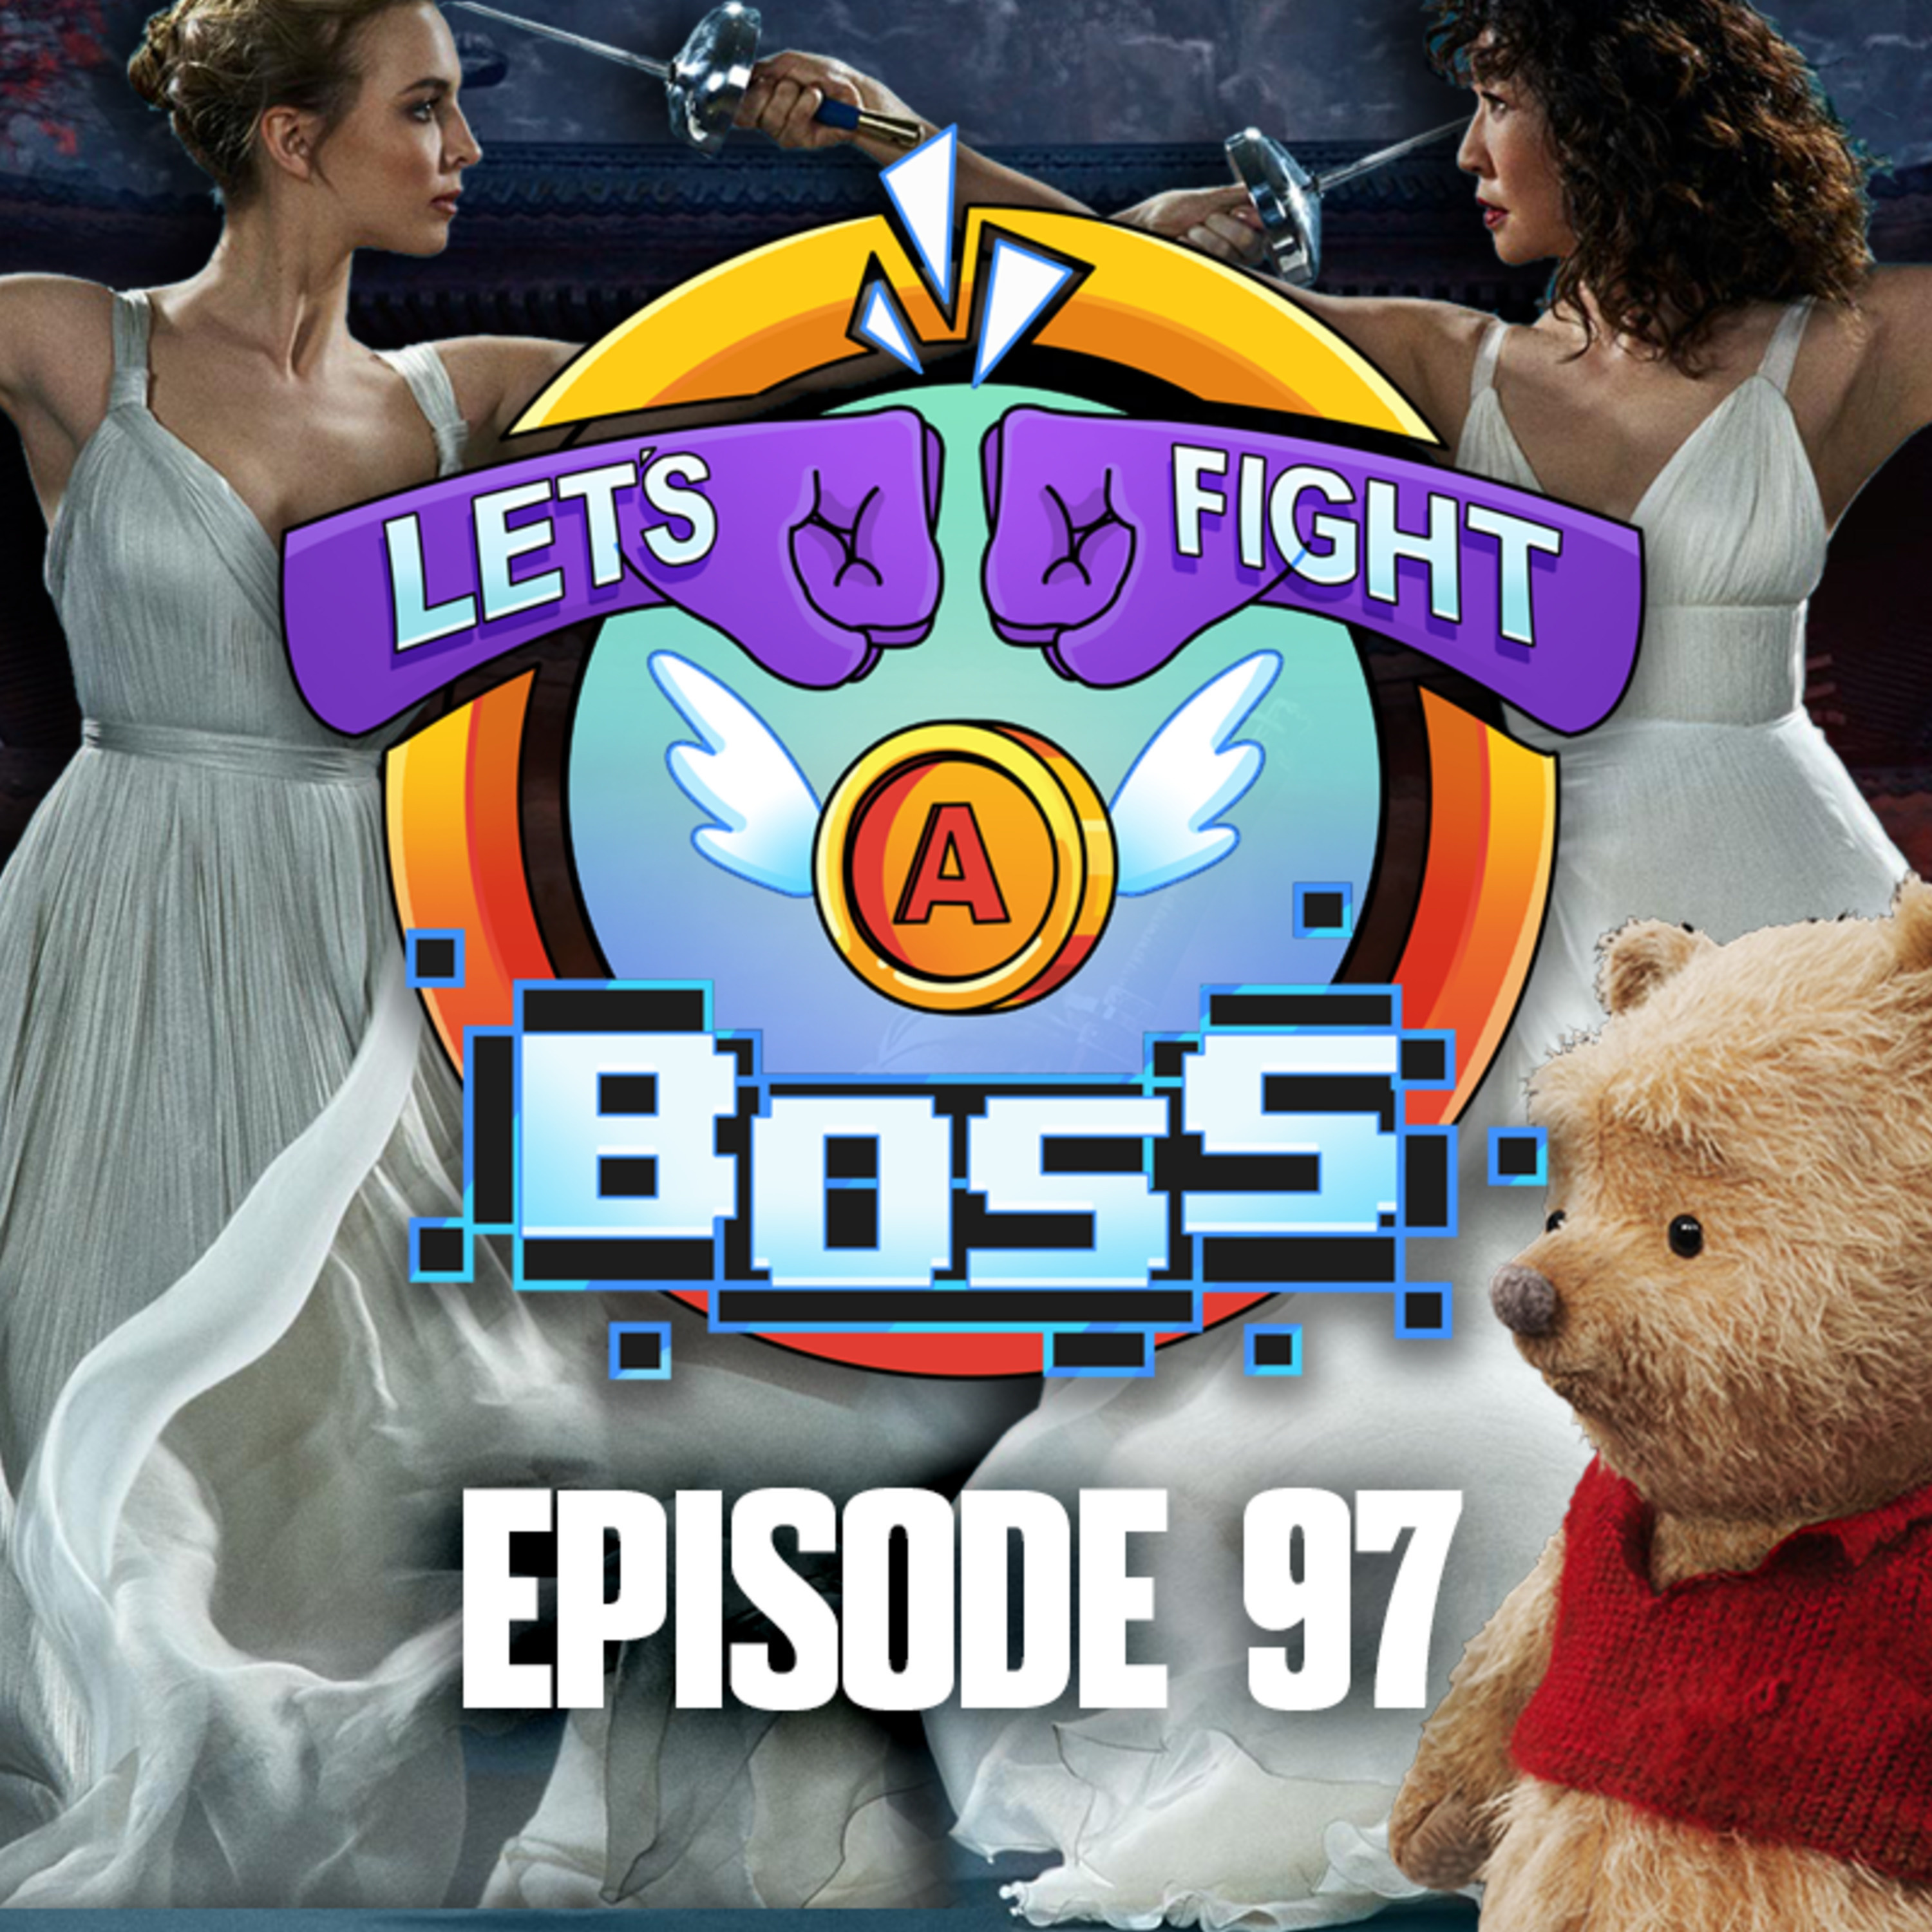 Ep 51: Let's Eat a Ghost – Let's Fight a Boss – Podcast